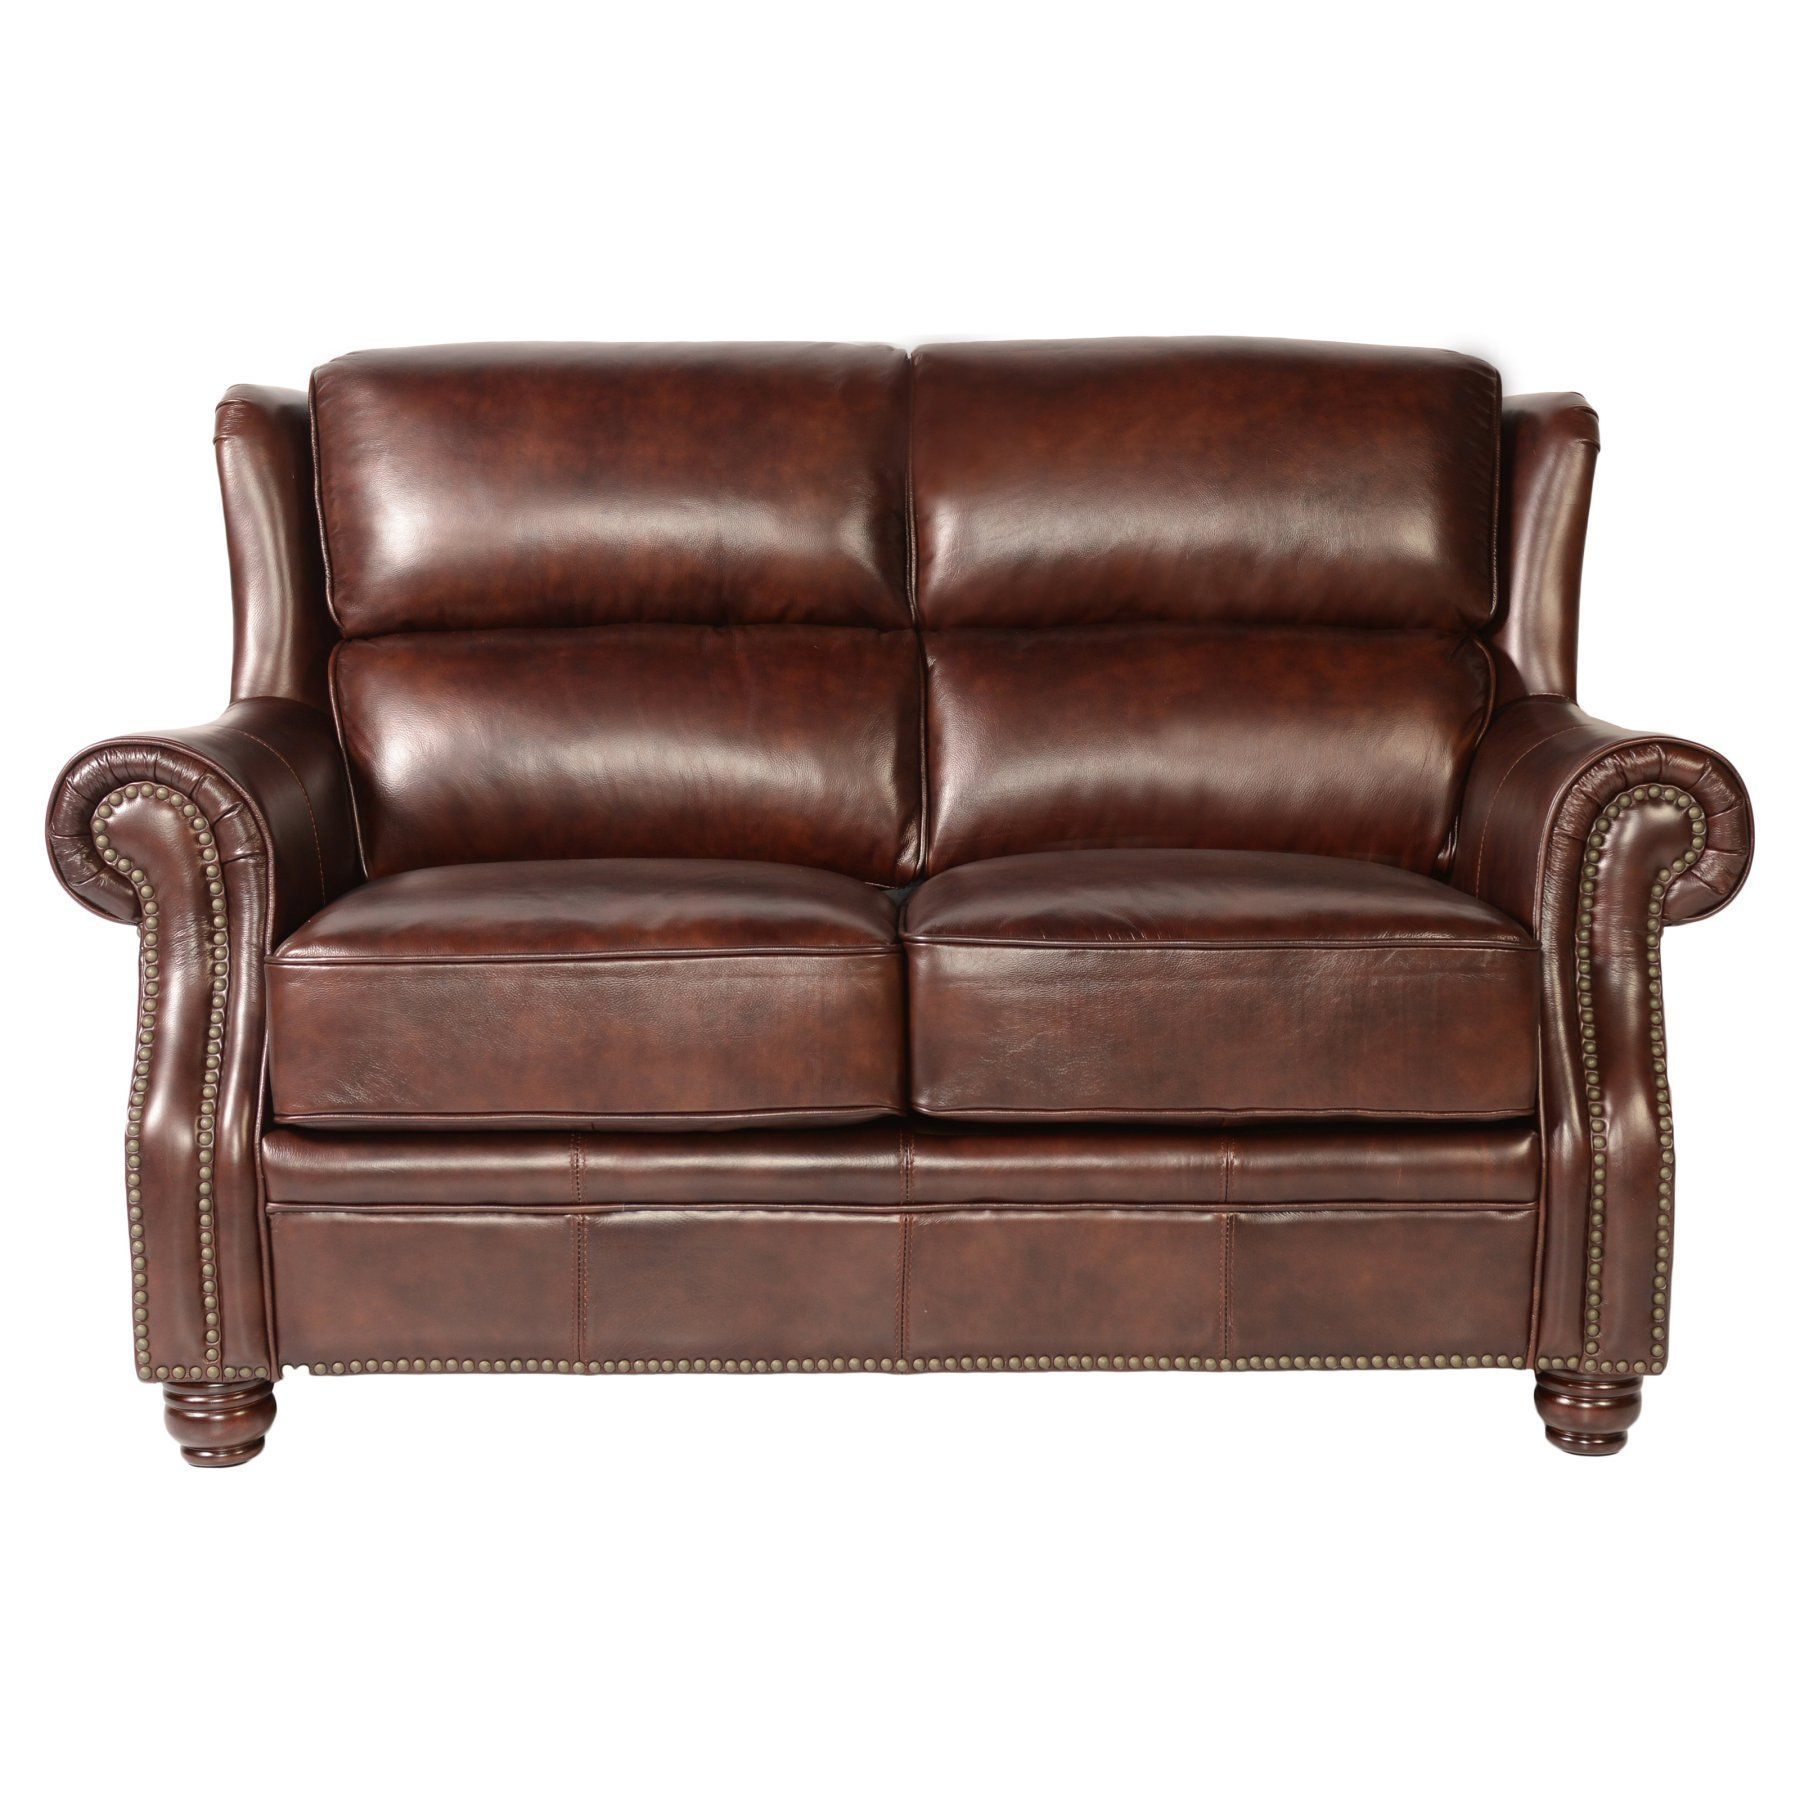 Magnificent Lazzaro Leather Oakwood Rustic Savauge Loveseat Products Andrewgaddart Wooden Chair Designs For Living Room Andrewgaddartcom